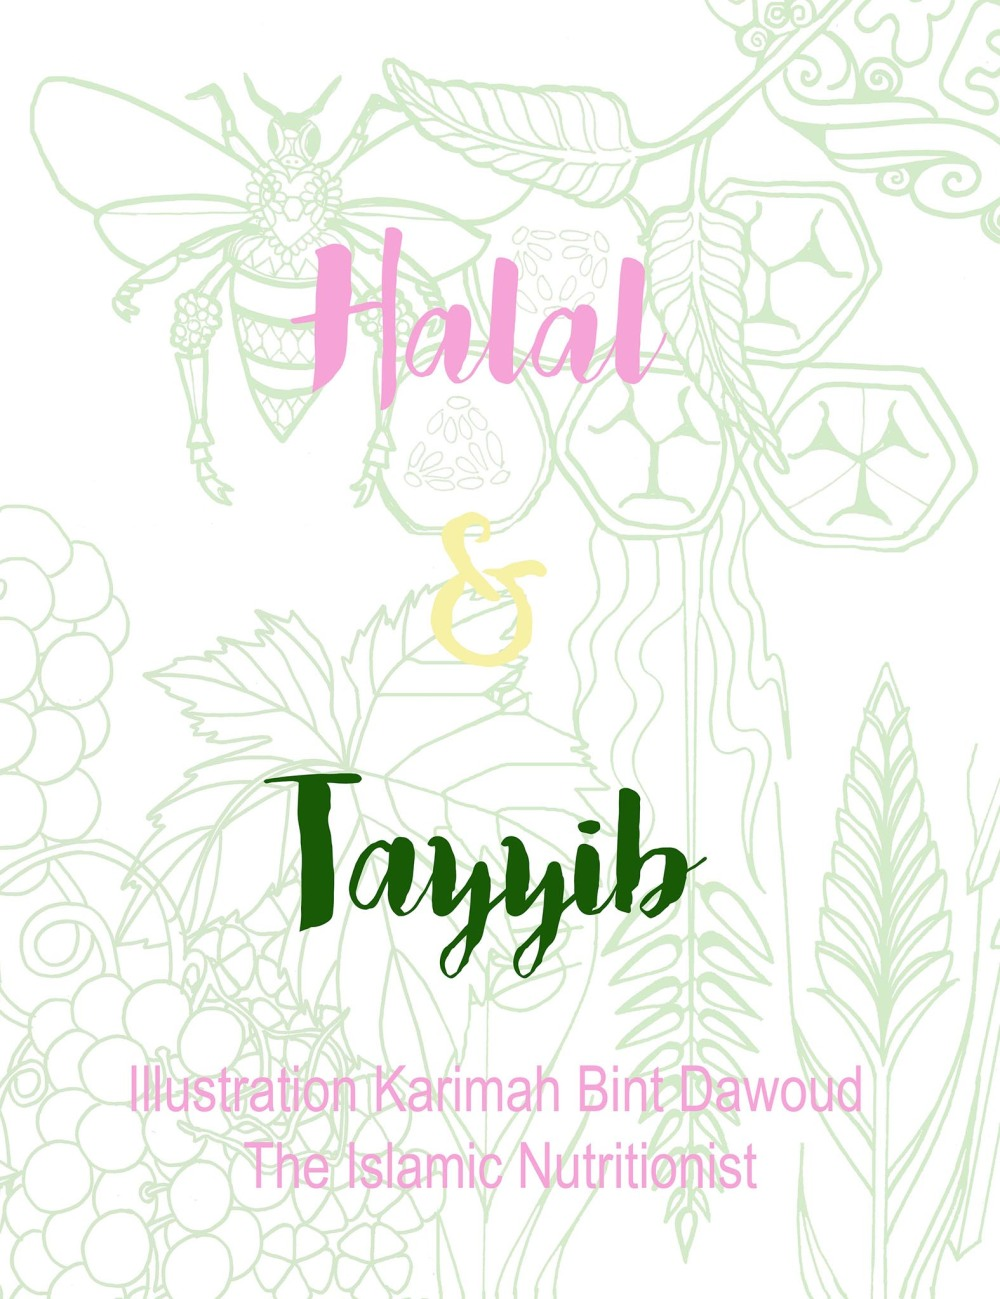 halal and tayyib small text